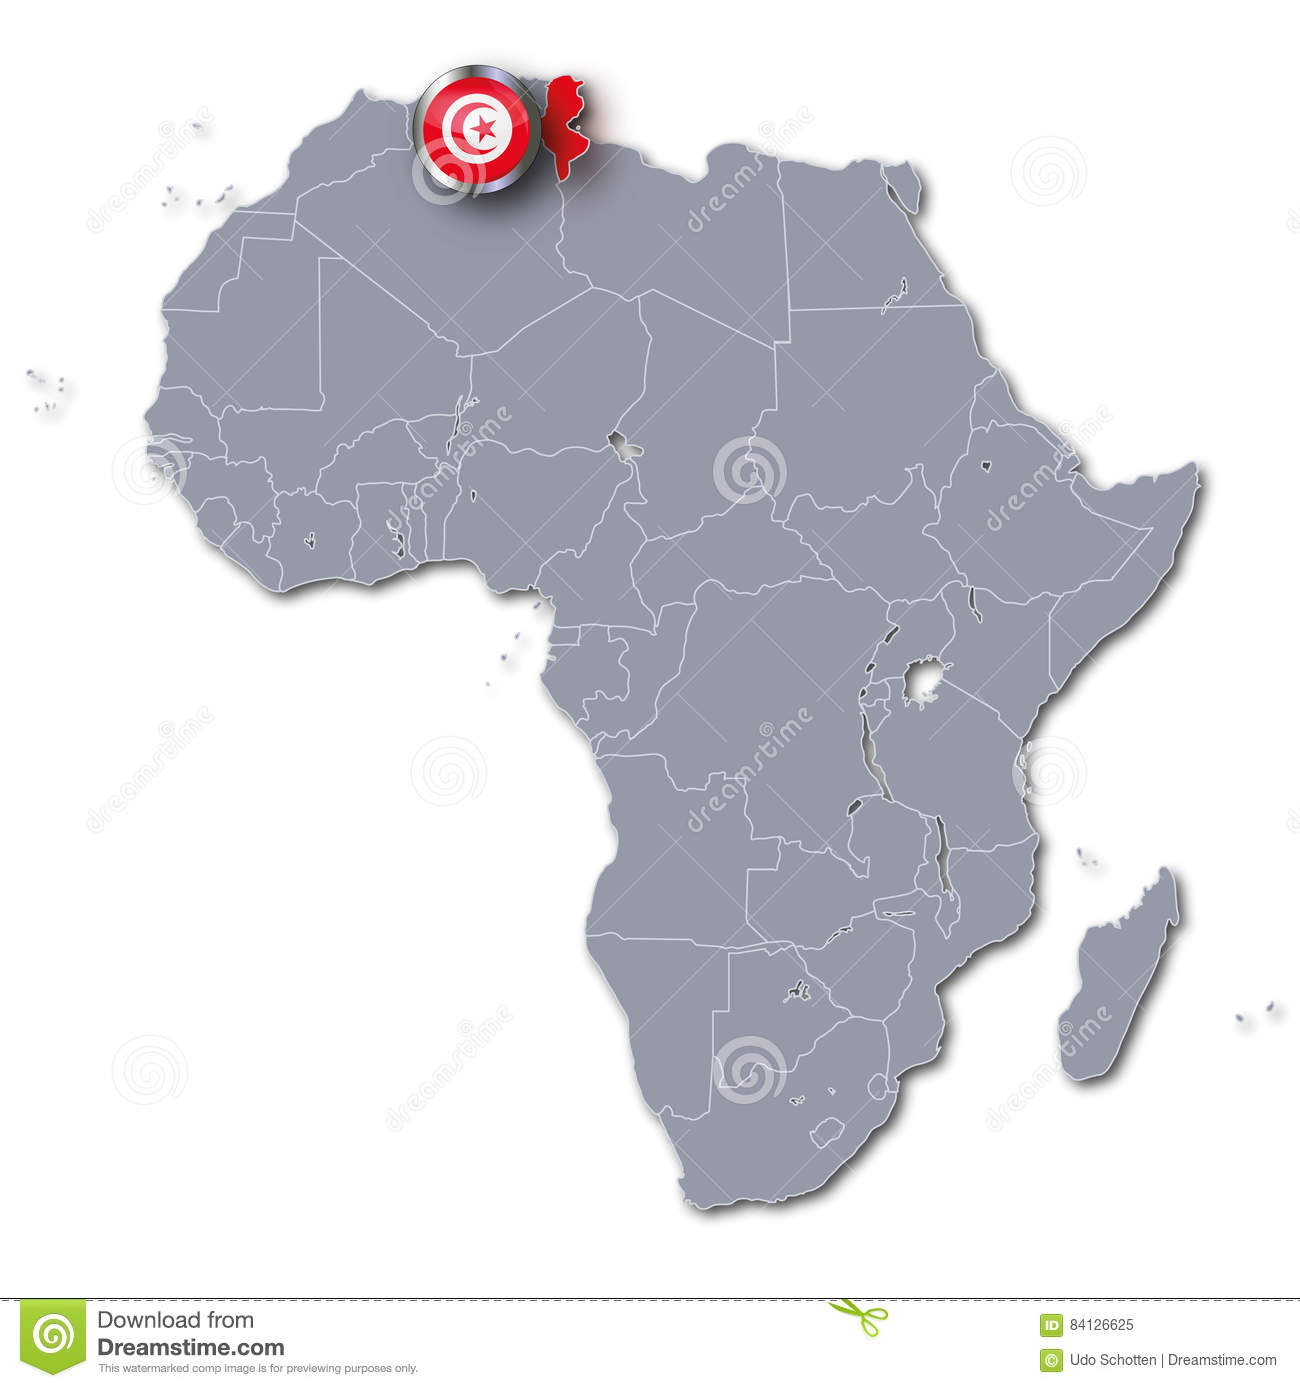 Africa map with Tunisia stock illustration. Illustration of country ...